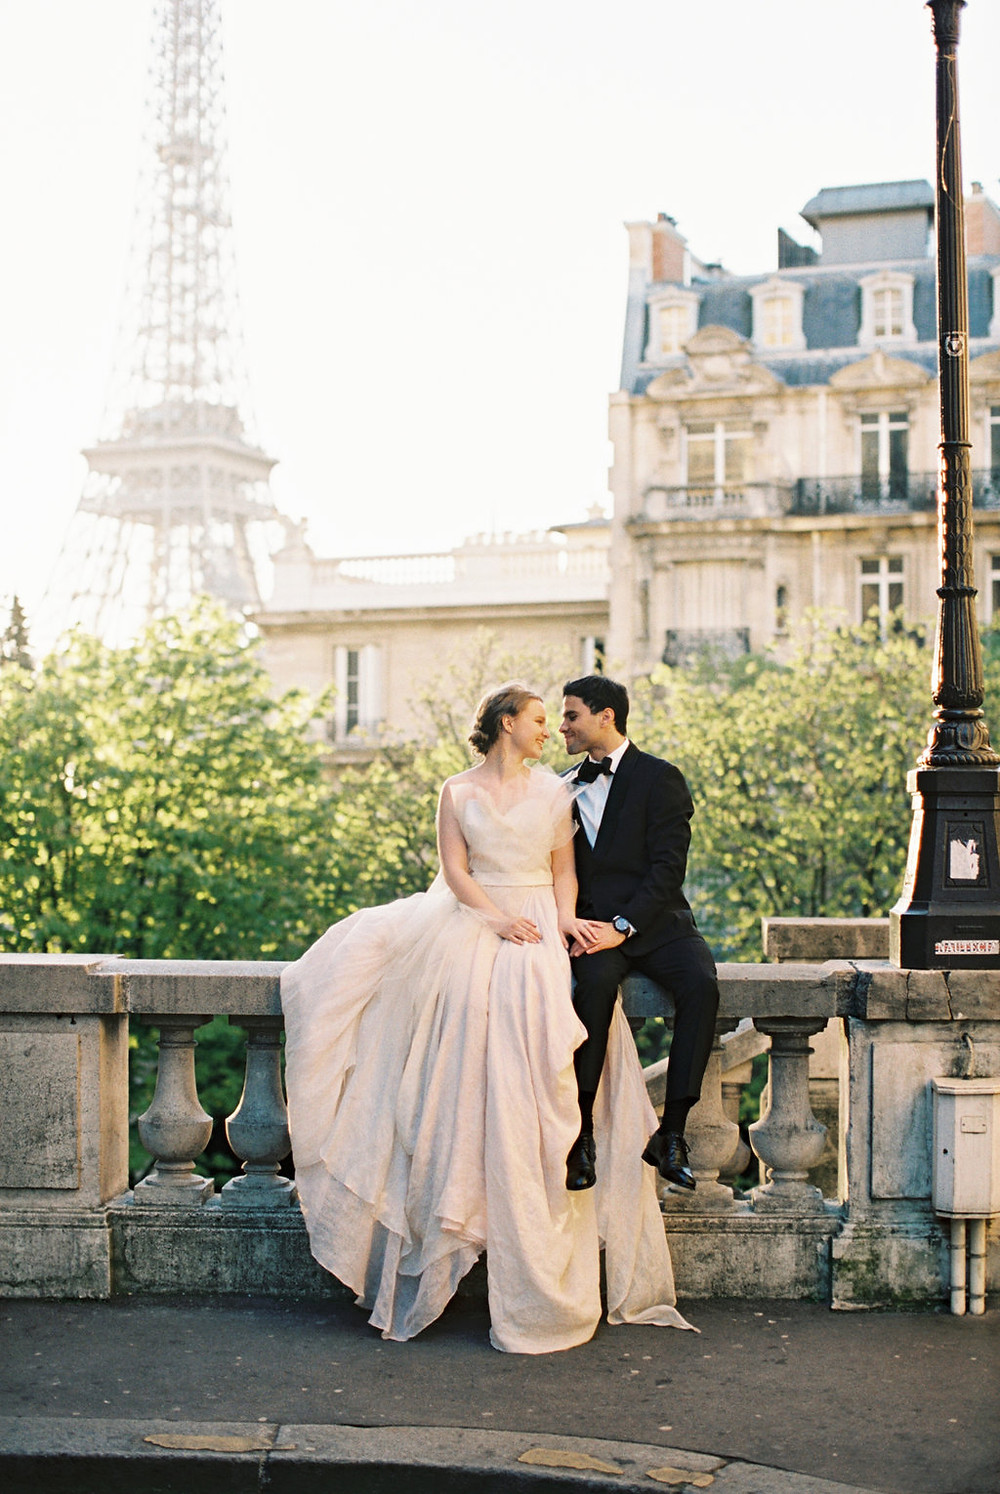 Eiffel Tower Bride and Groom